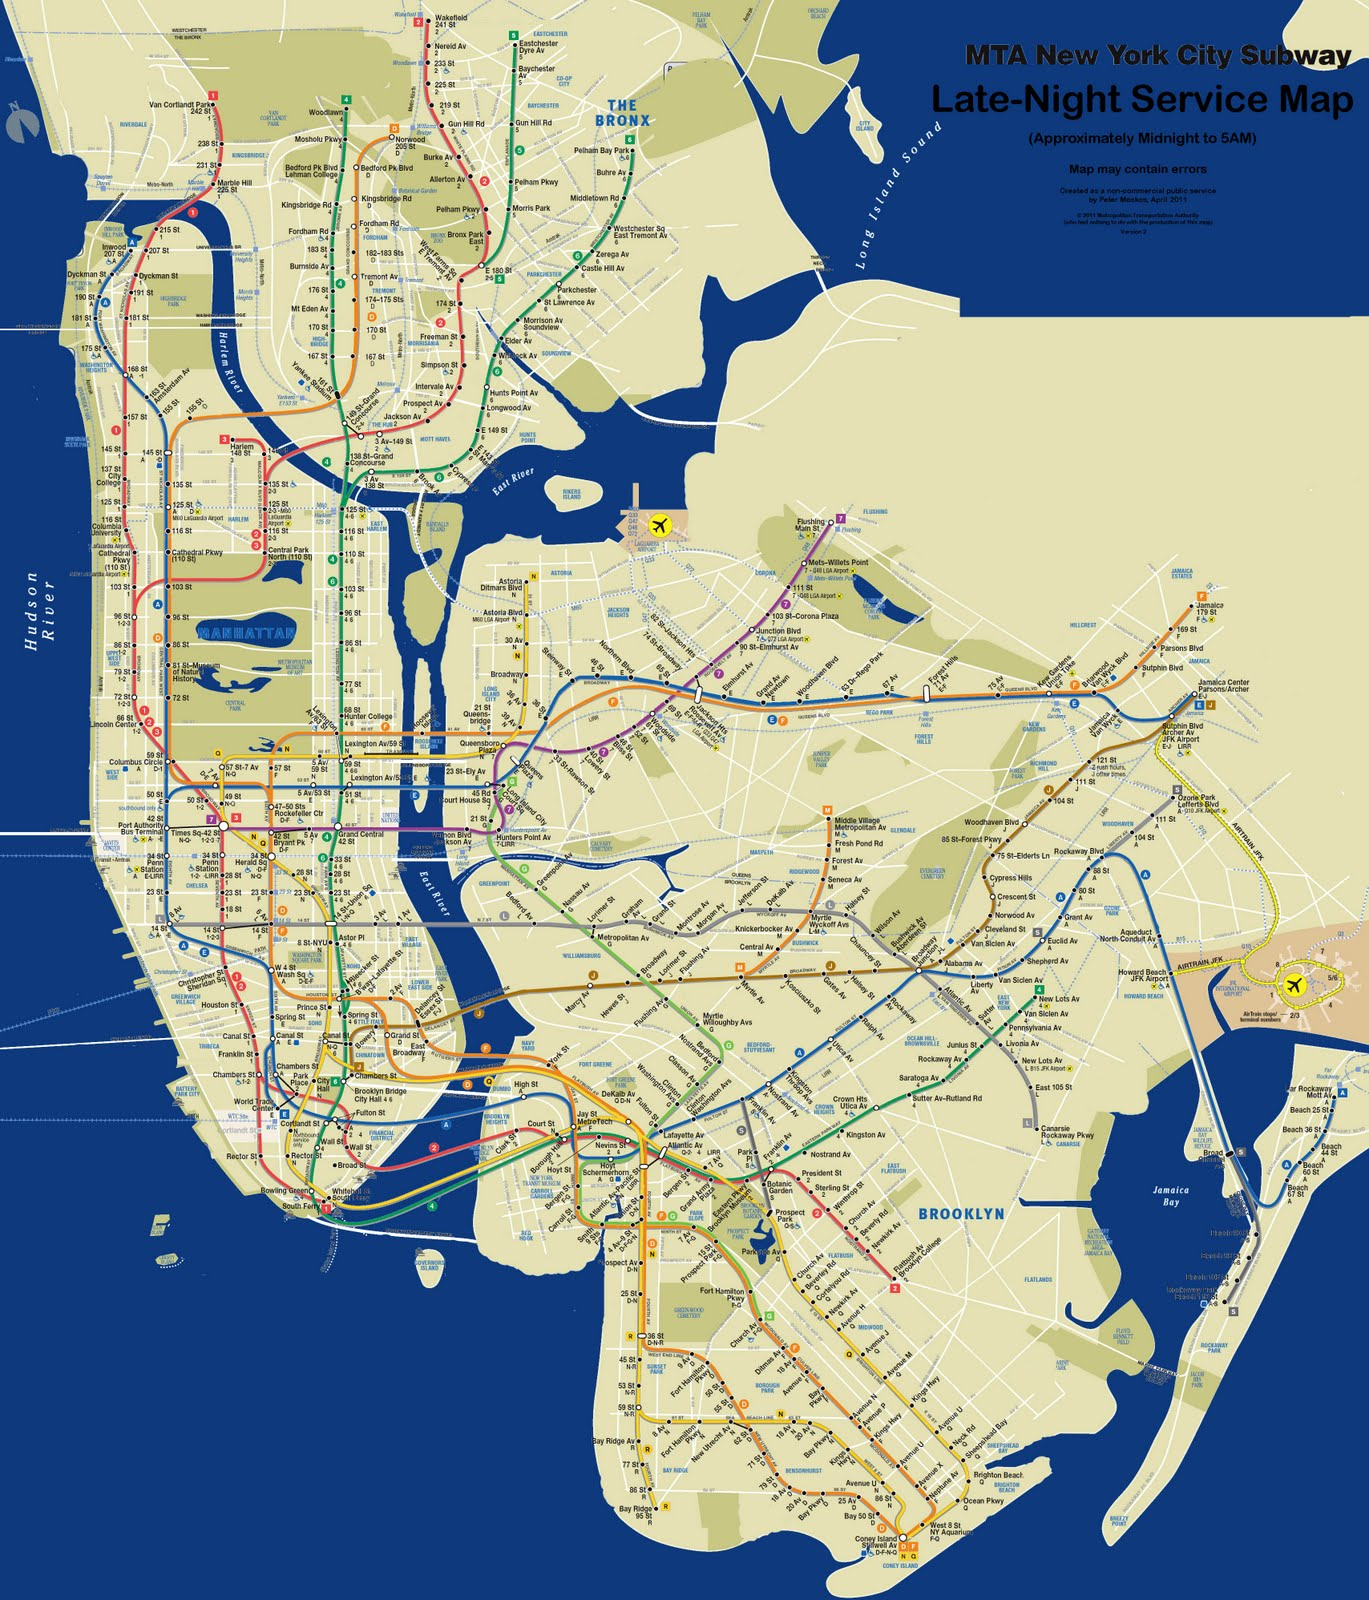 Astoria Subway Map.Map Of The Day Subway Service At Night Second Ave Sagas